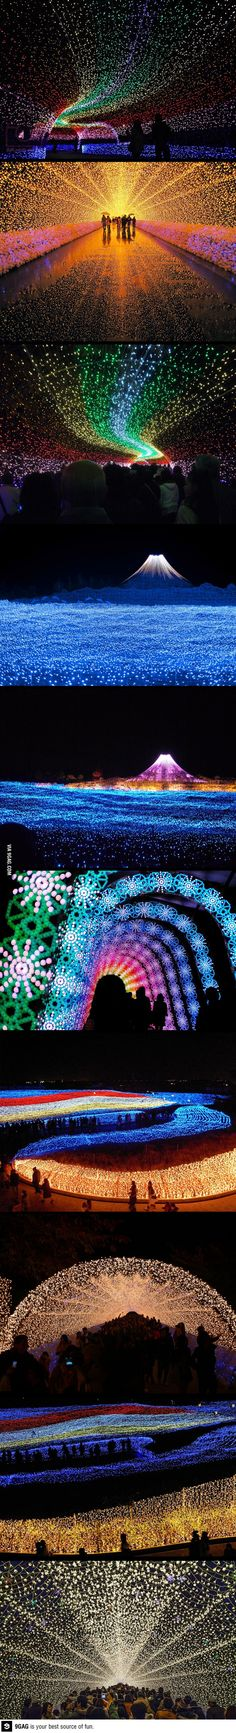 Winter light festival in japan, made from 7 million LEDs